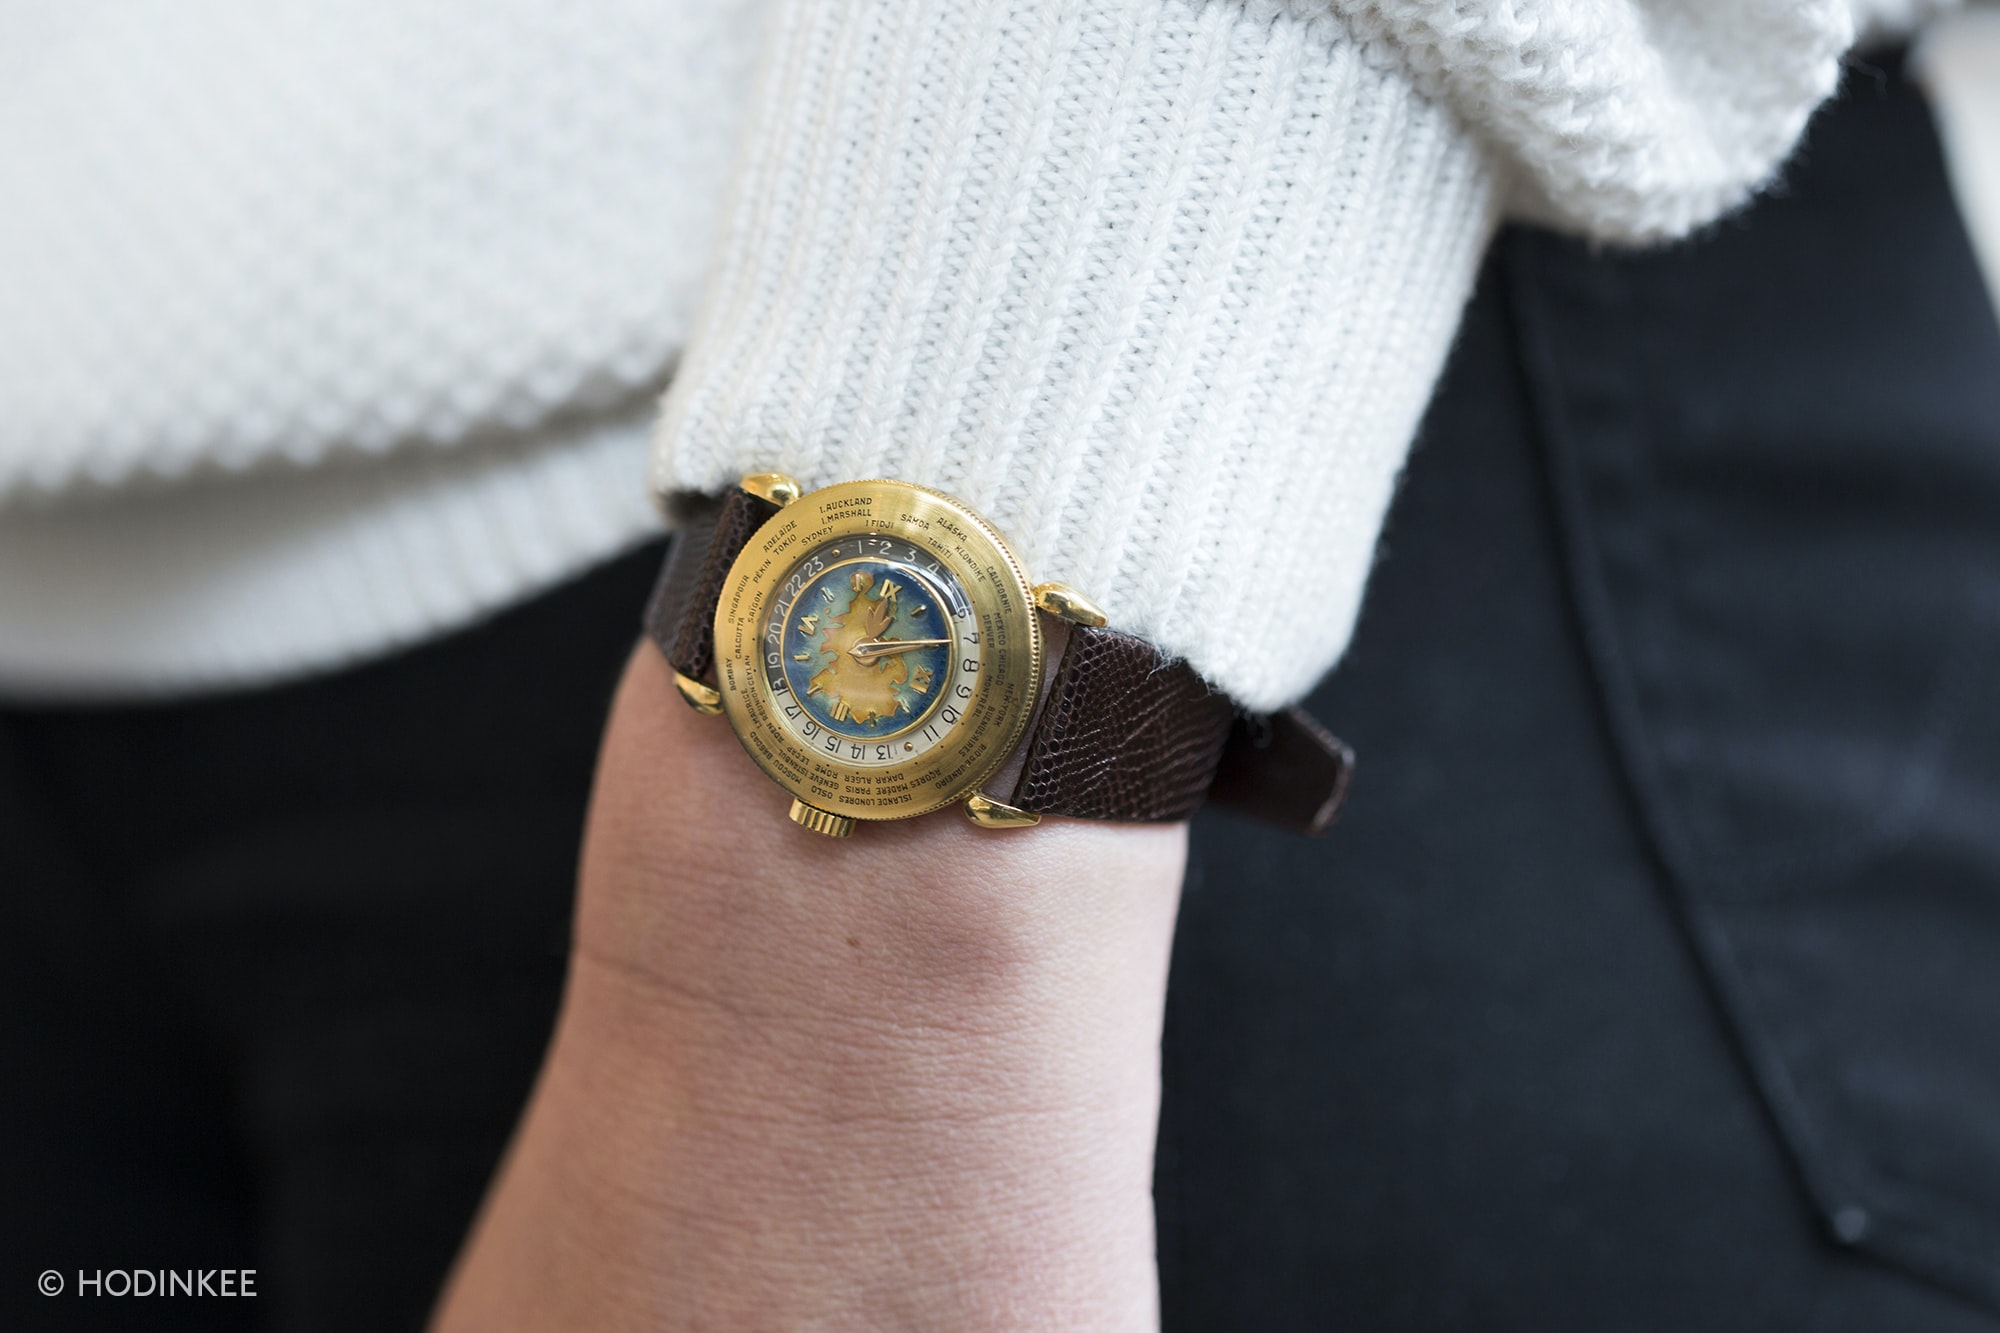 A Patek Philippe Reference 1415 World Timer With Eurasia Enamel Dial, One Of Only Two Known, Coming Up At Sotheby's A Patek Philippe Reference 1415 World Timer With Eurasia Enamel Dial, One Of Only Two Known, Coming Up At Sotheby's 20010124 copy